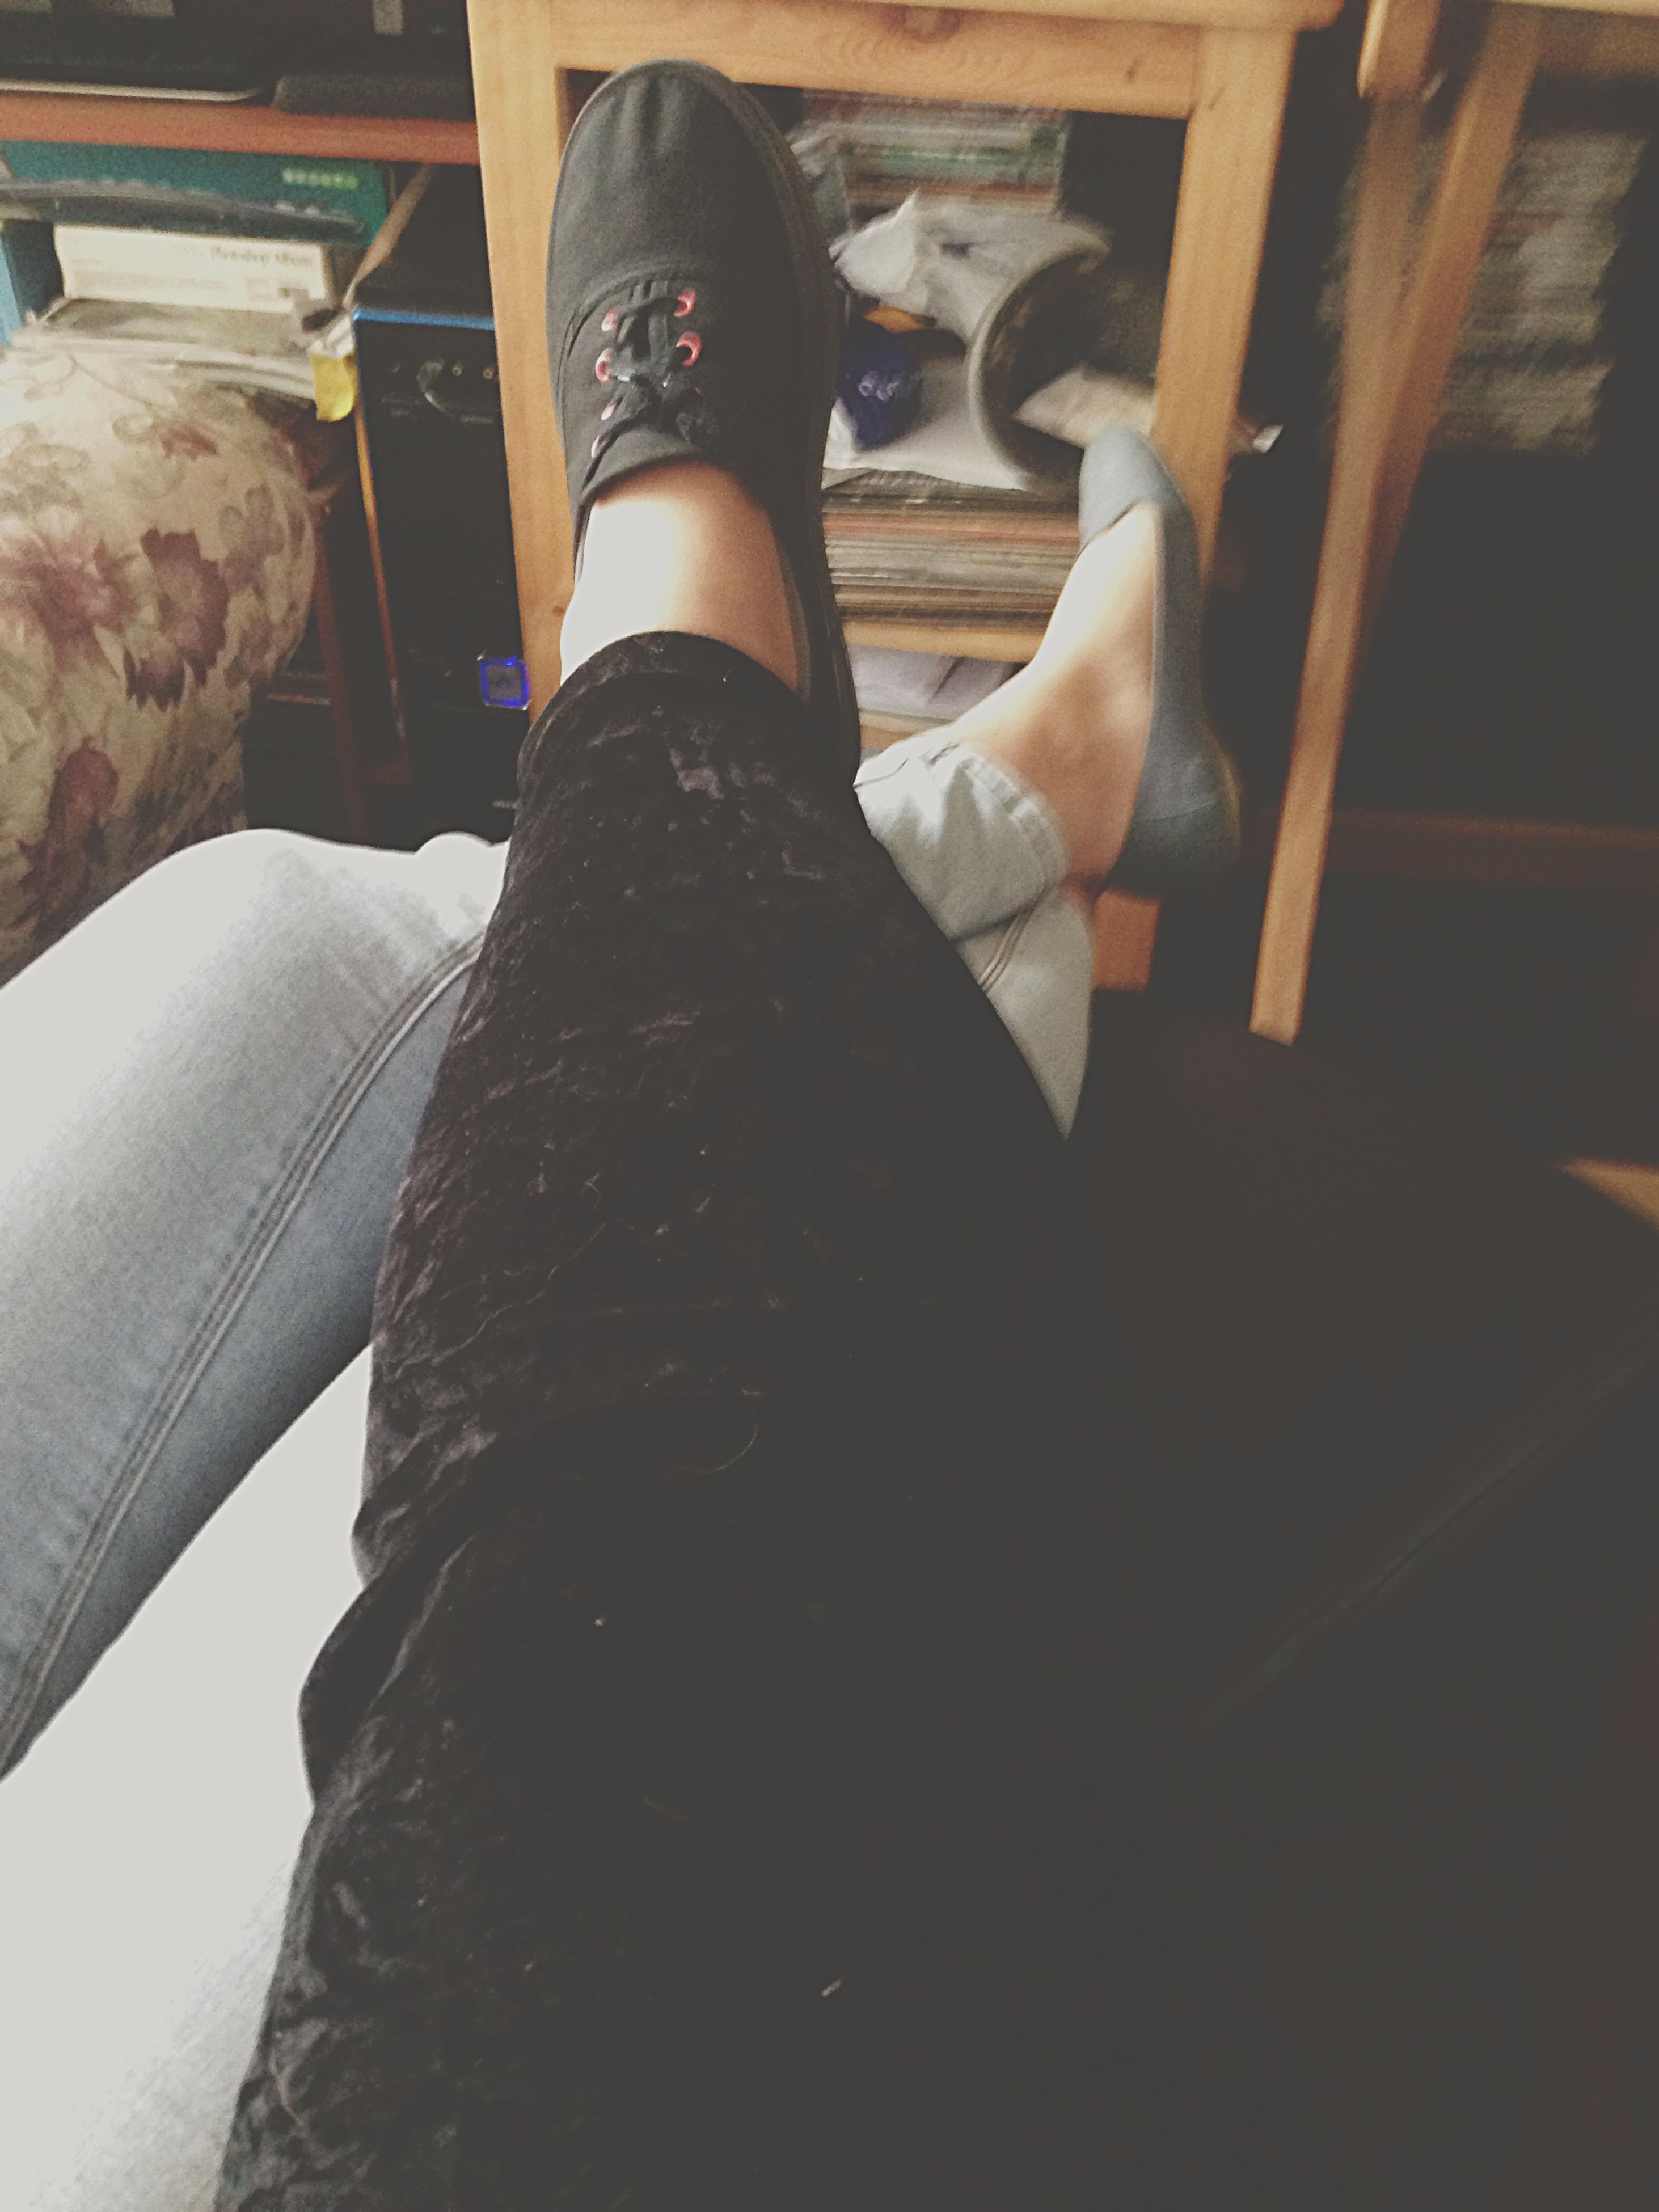 low section, person, lifestyles, indoors, shoe, men, leisure activity, human foot, sitting, part of, standing, unrecognizable person, personal perspective, jeans, sunlight, day